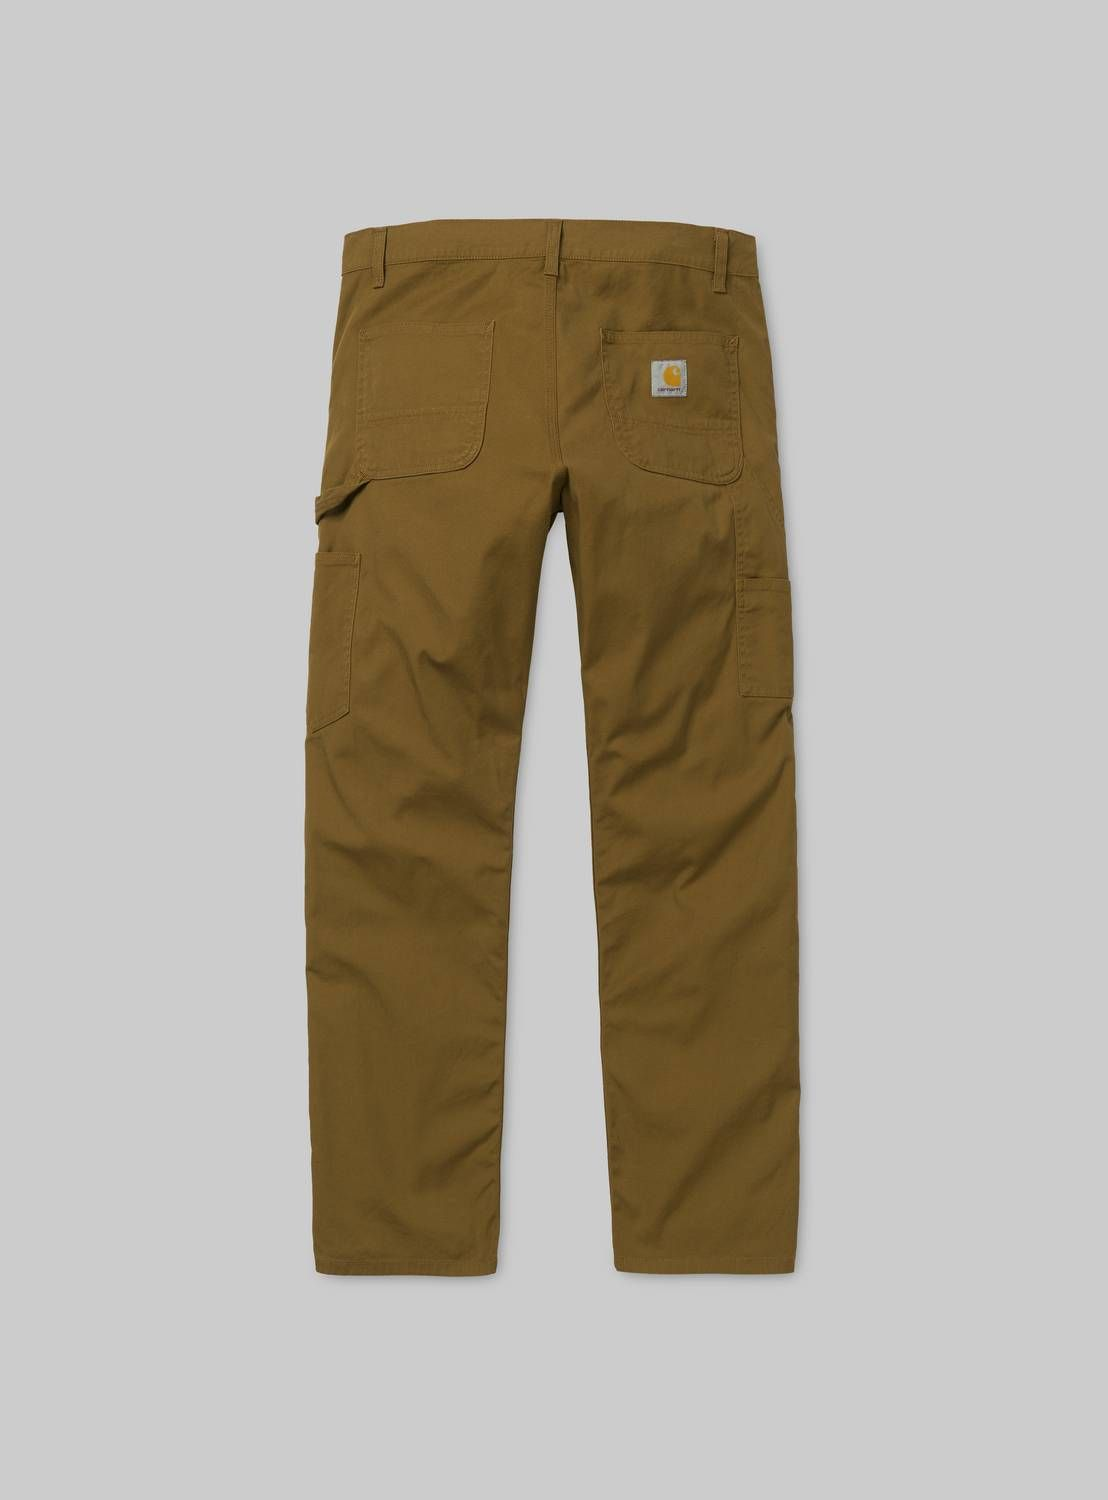 4cede03c Shop the Carhartt WIP Ruck Single Knee Pant from the offical online store.  | Largest selection | Shipping the same working day.